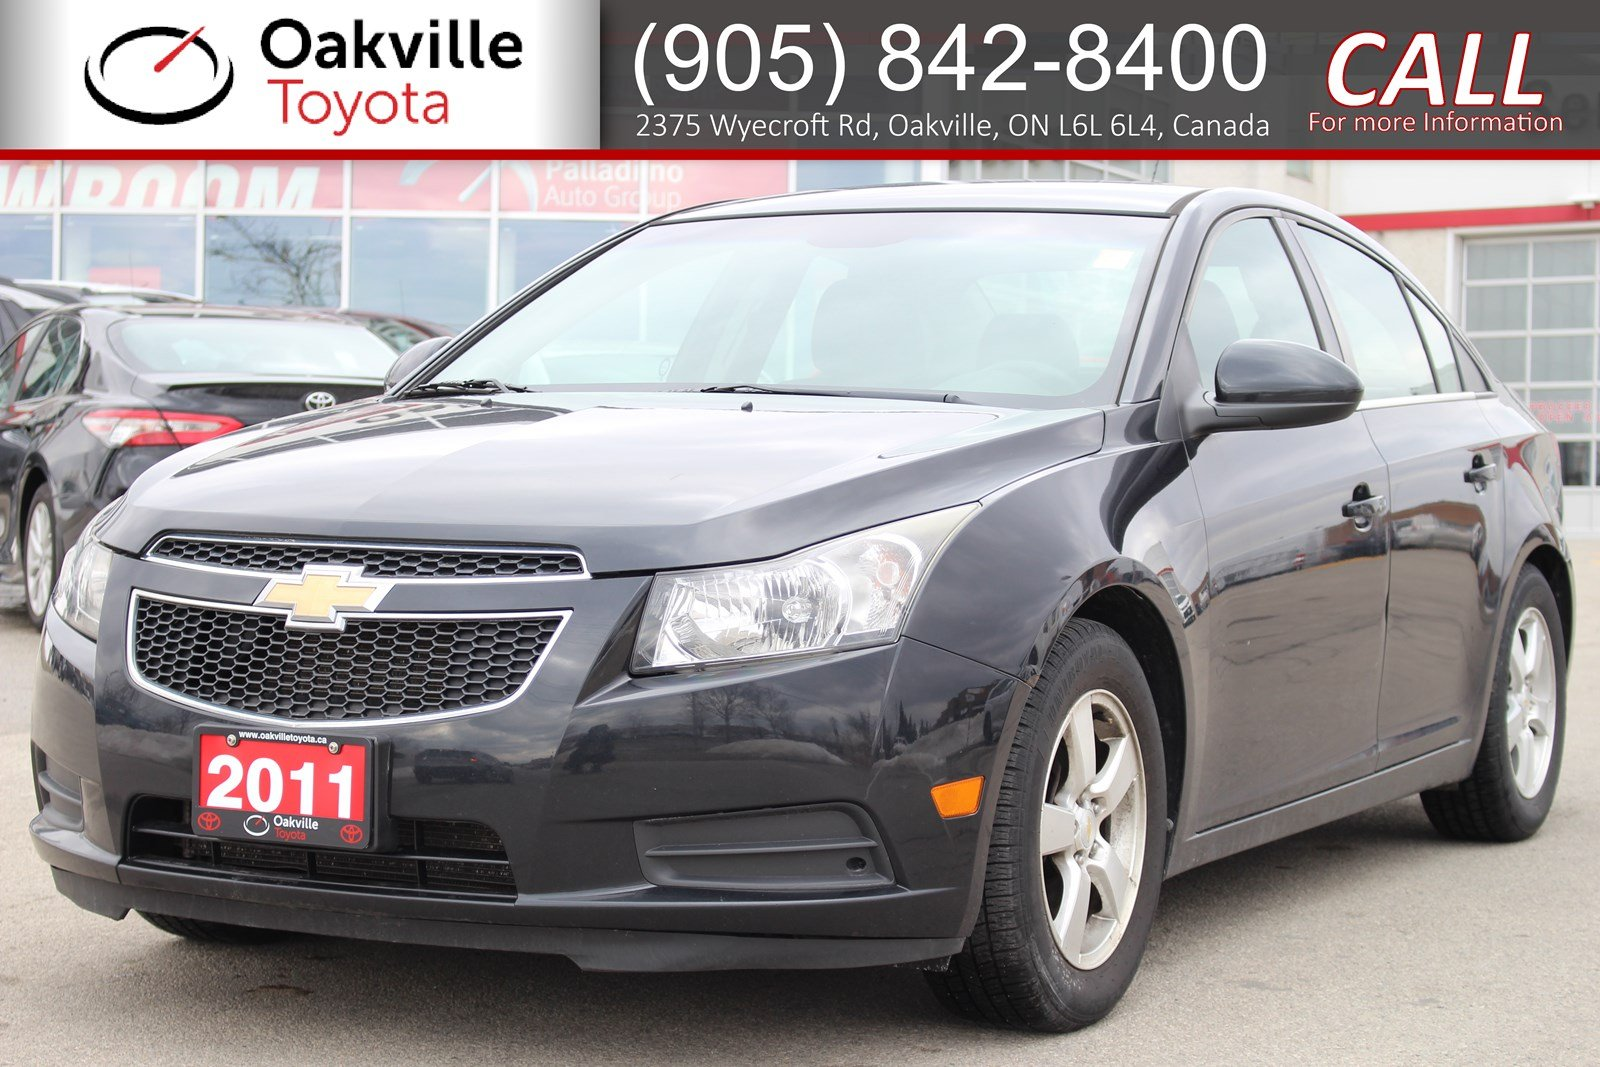 Pre-Owned 2011 Chevrolet Cruze LT Turbo+ w/1SB with Clean Carfax | SELF CERTIFY